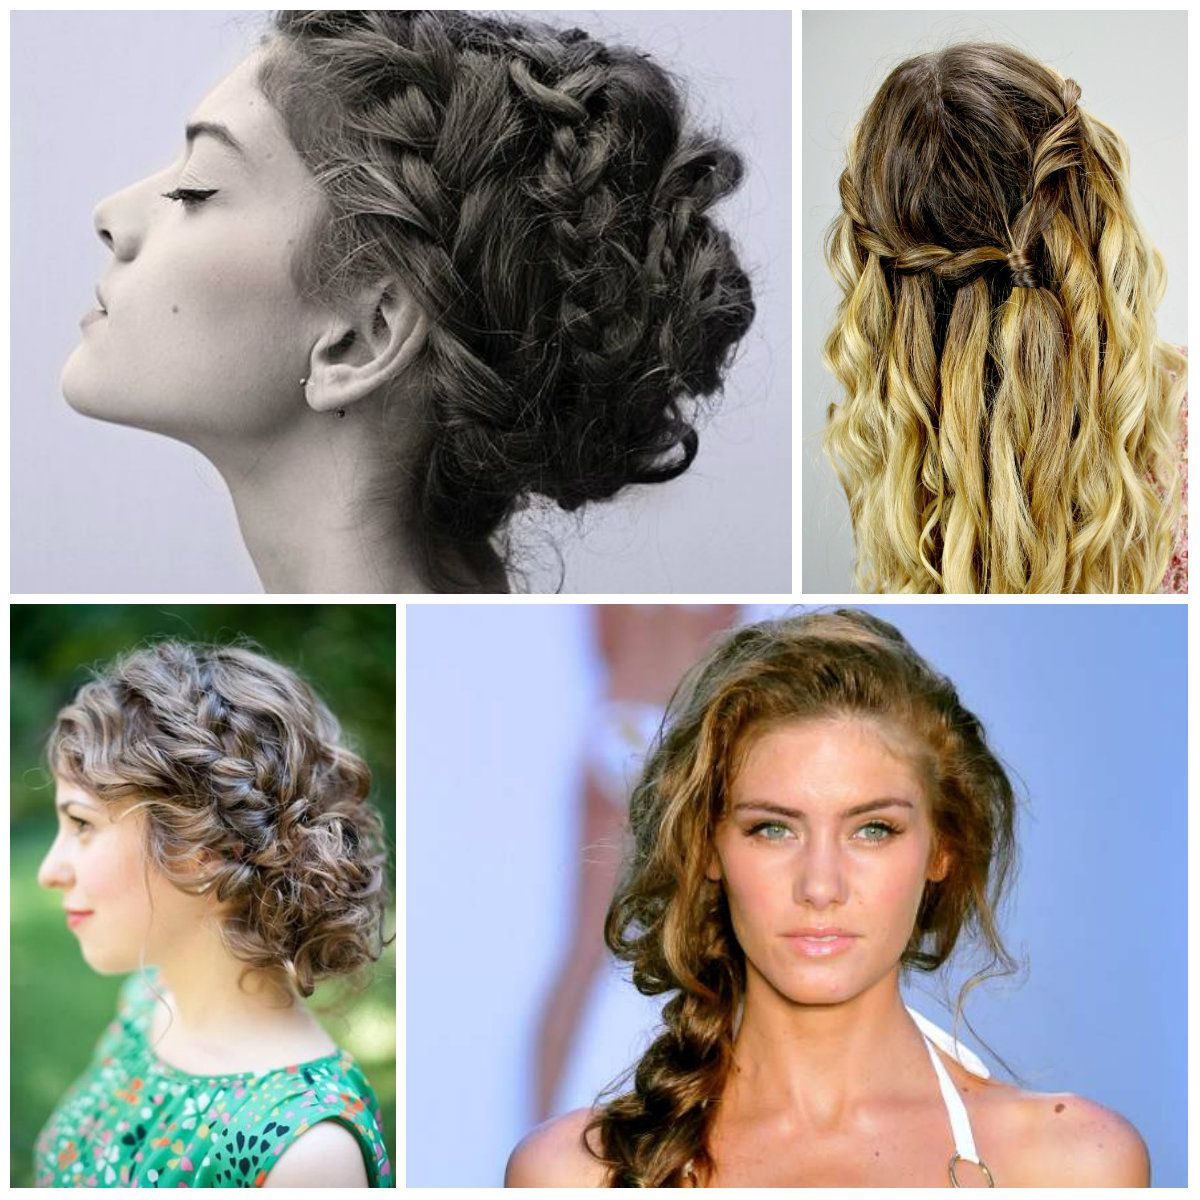 Cozy Braided Hairstyles for Curls 2016